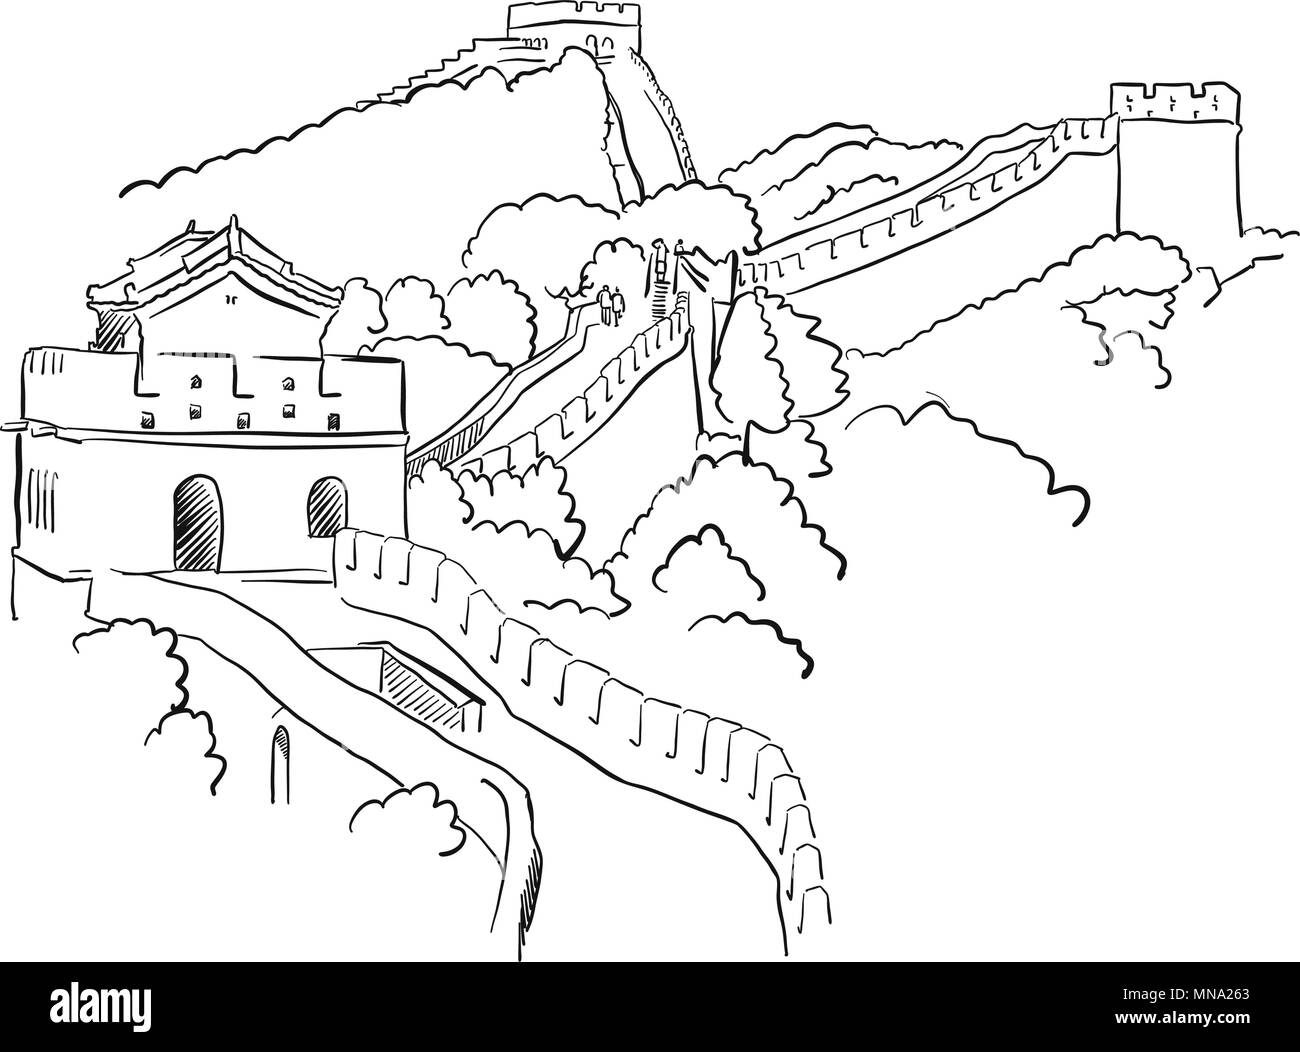 china landmarks coloring pages - photo#6